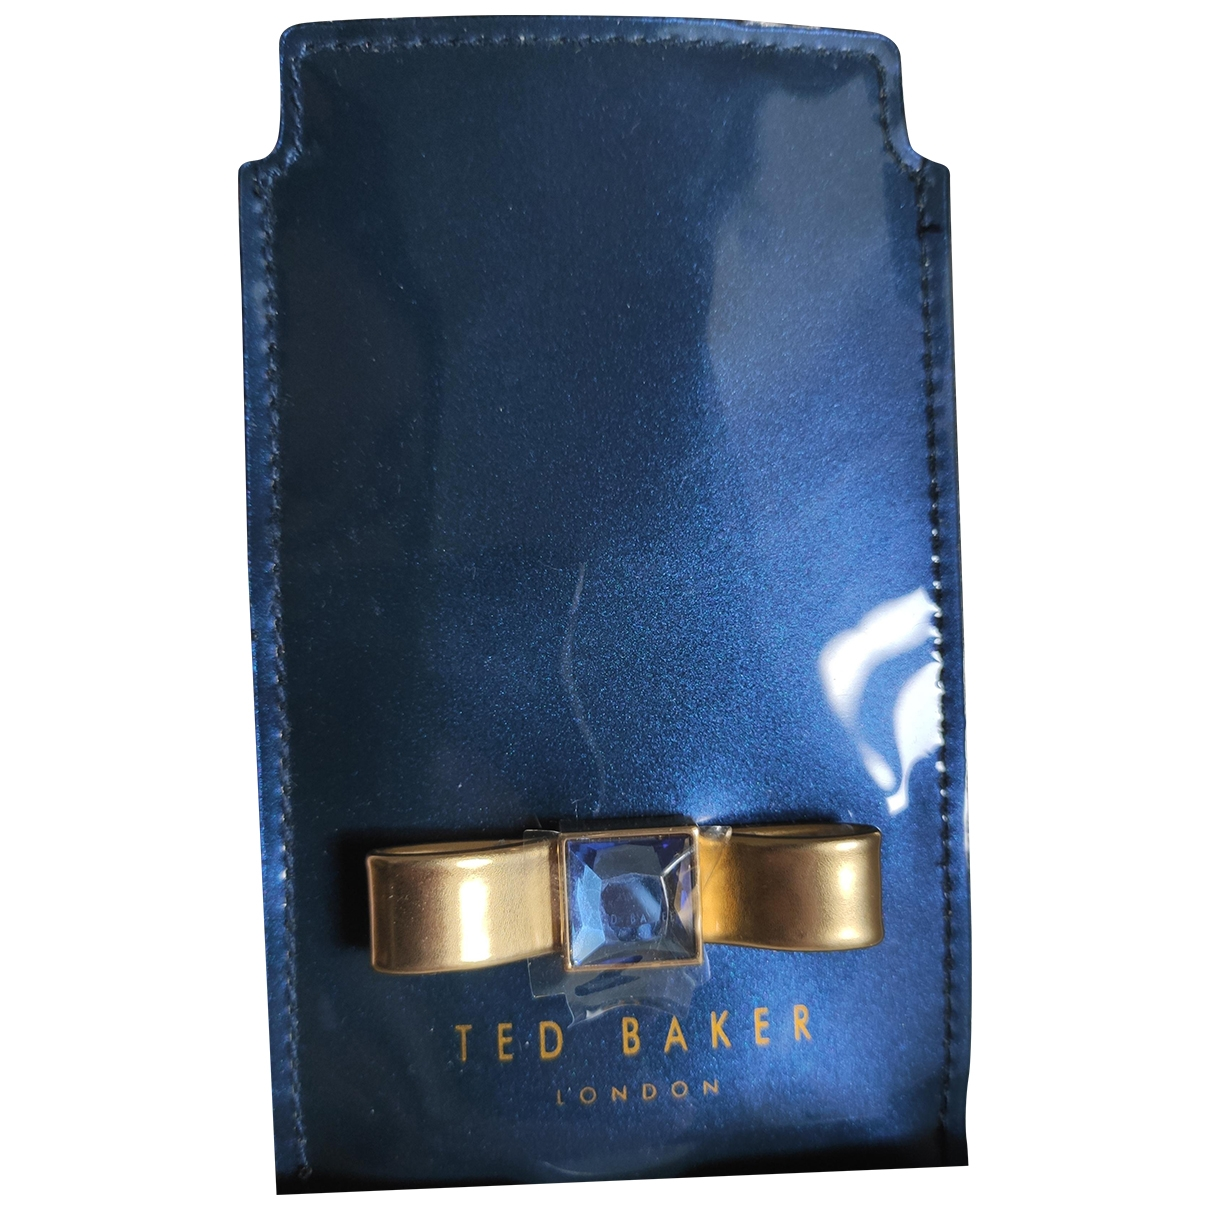 Ted Baker \N Blue Accessories for Life & Living \N